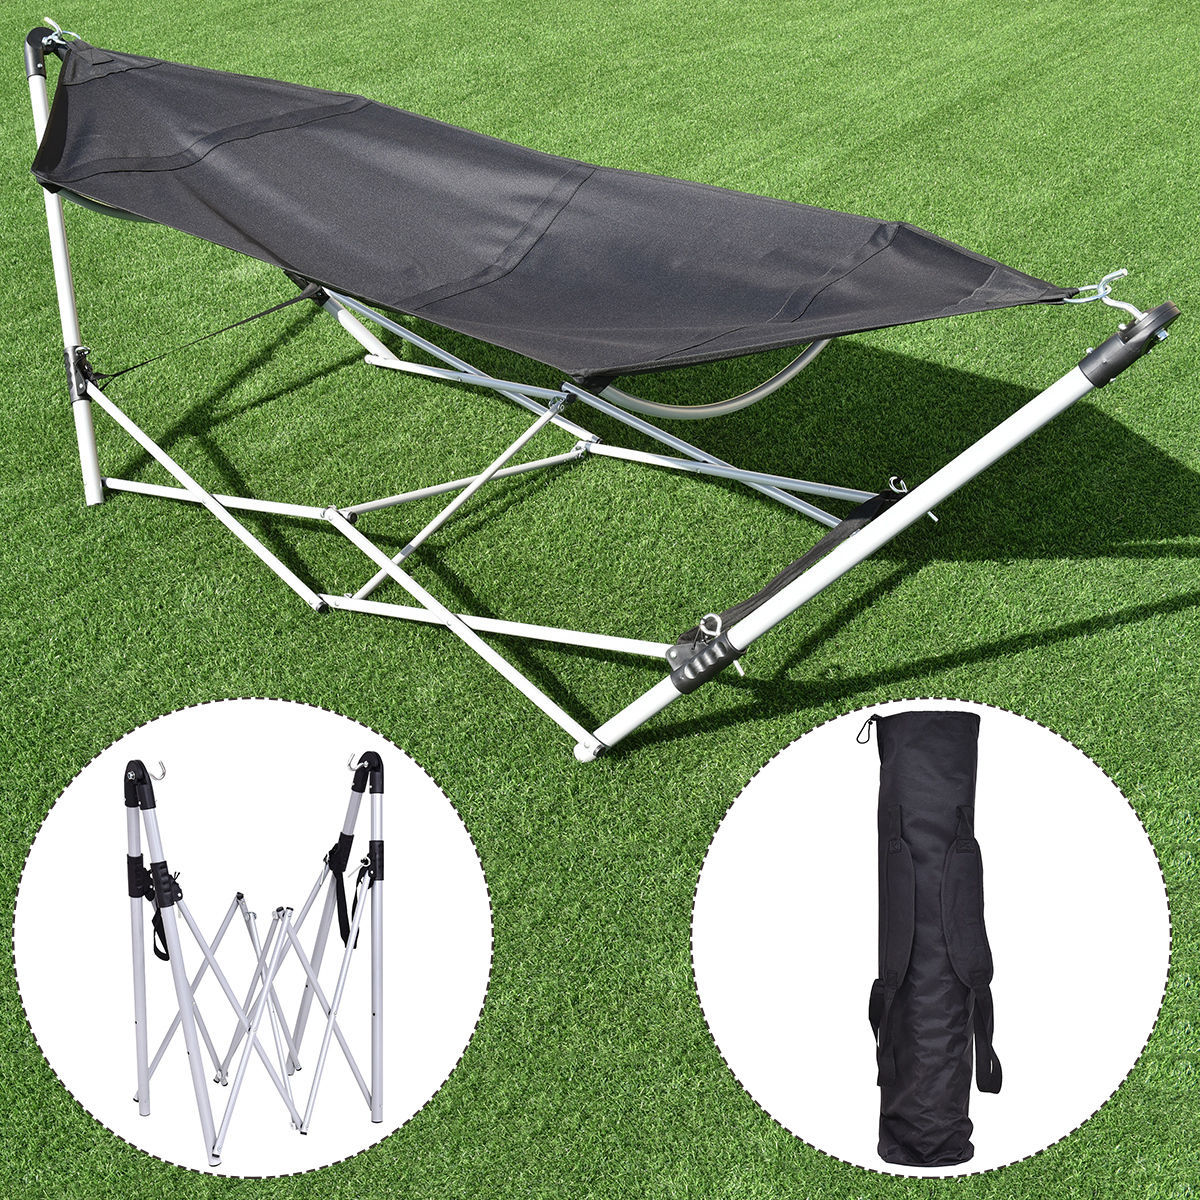 Costway Black Portable Folding Hammock Lounge Camping Bed Steel Frame Stand W Carry Bag by Costway